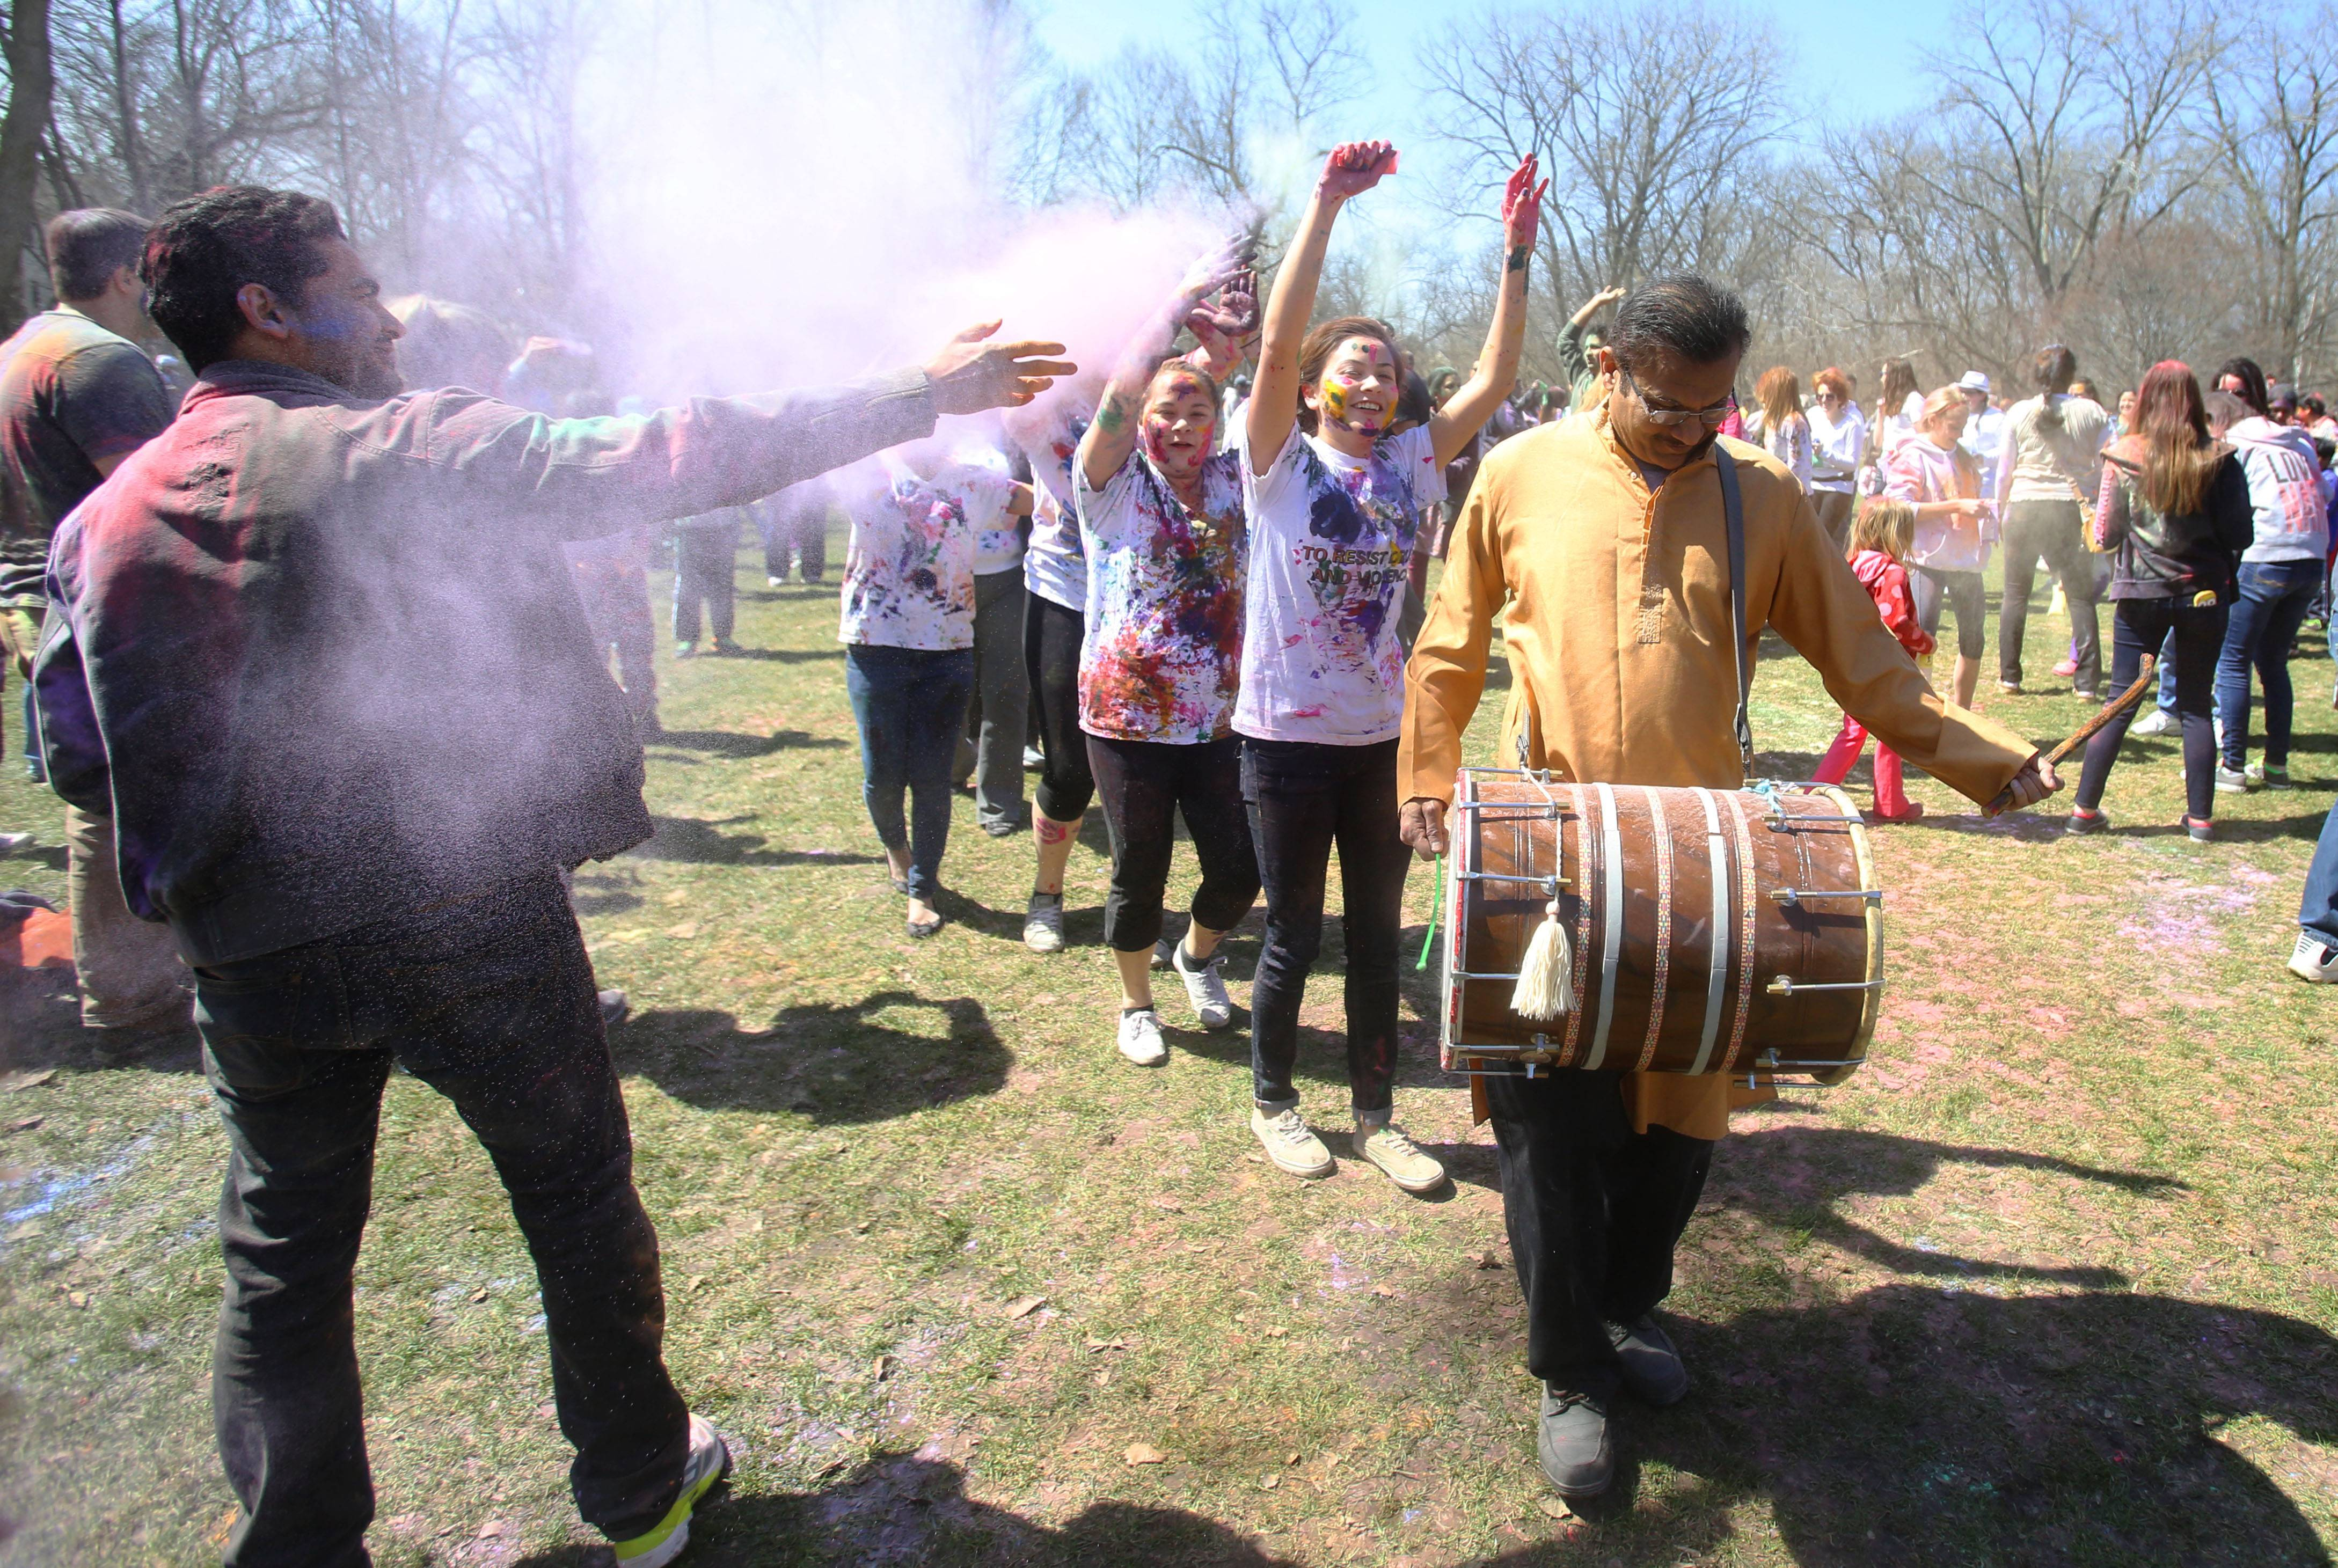 Dhol player Mehul Adhikari of Palatine leads the way as the Simply Vedic Cultural Society hosts the annual Festival of Colors in celebration of Holi. Participants throw packets of colored powder/flour at each other in honor of the changing seasons in Naperville.